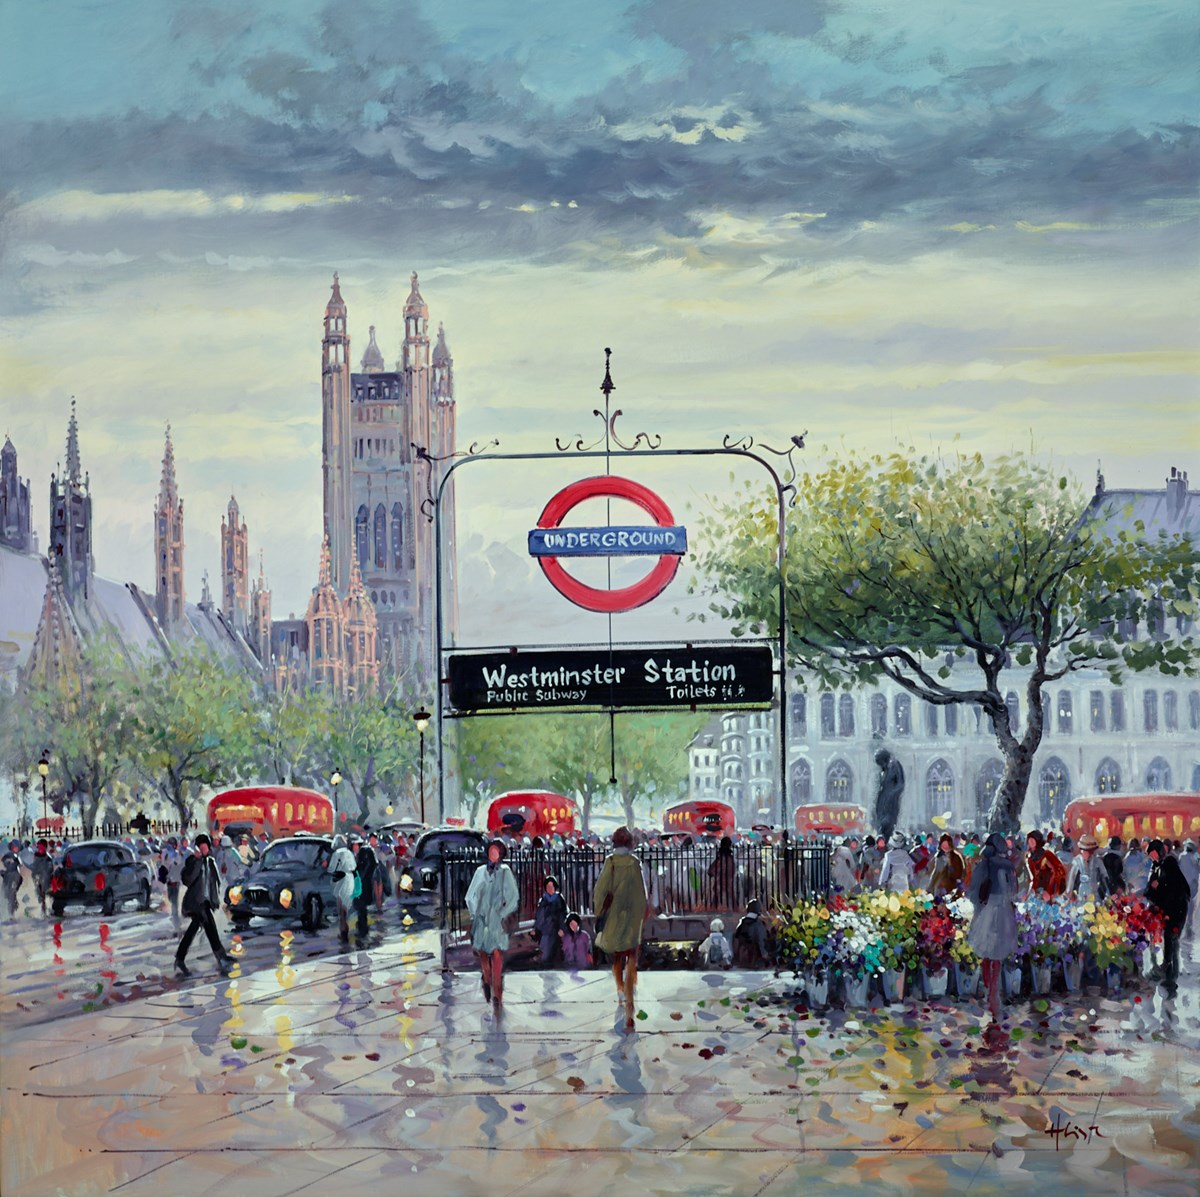 At Westminster Station by henderson cisz -  sized 40x40 inches. Available from Whitewall Galleries